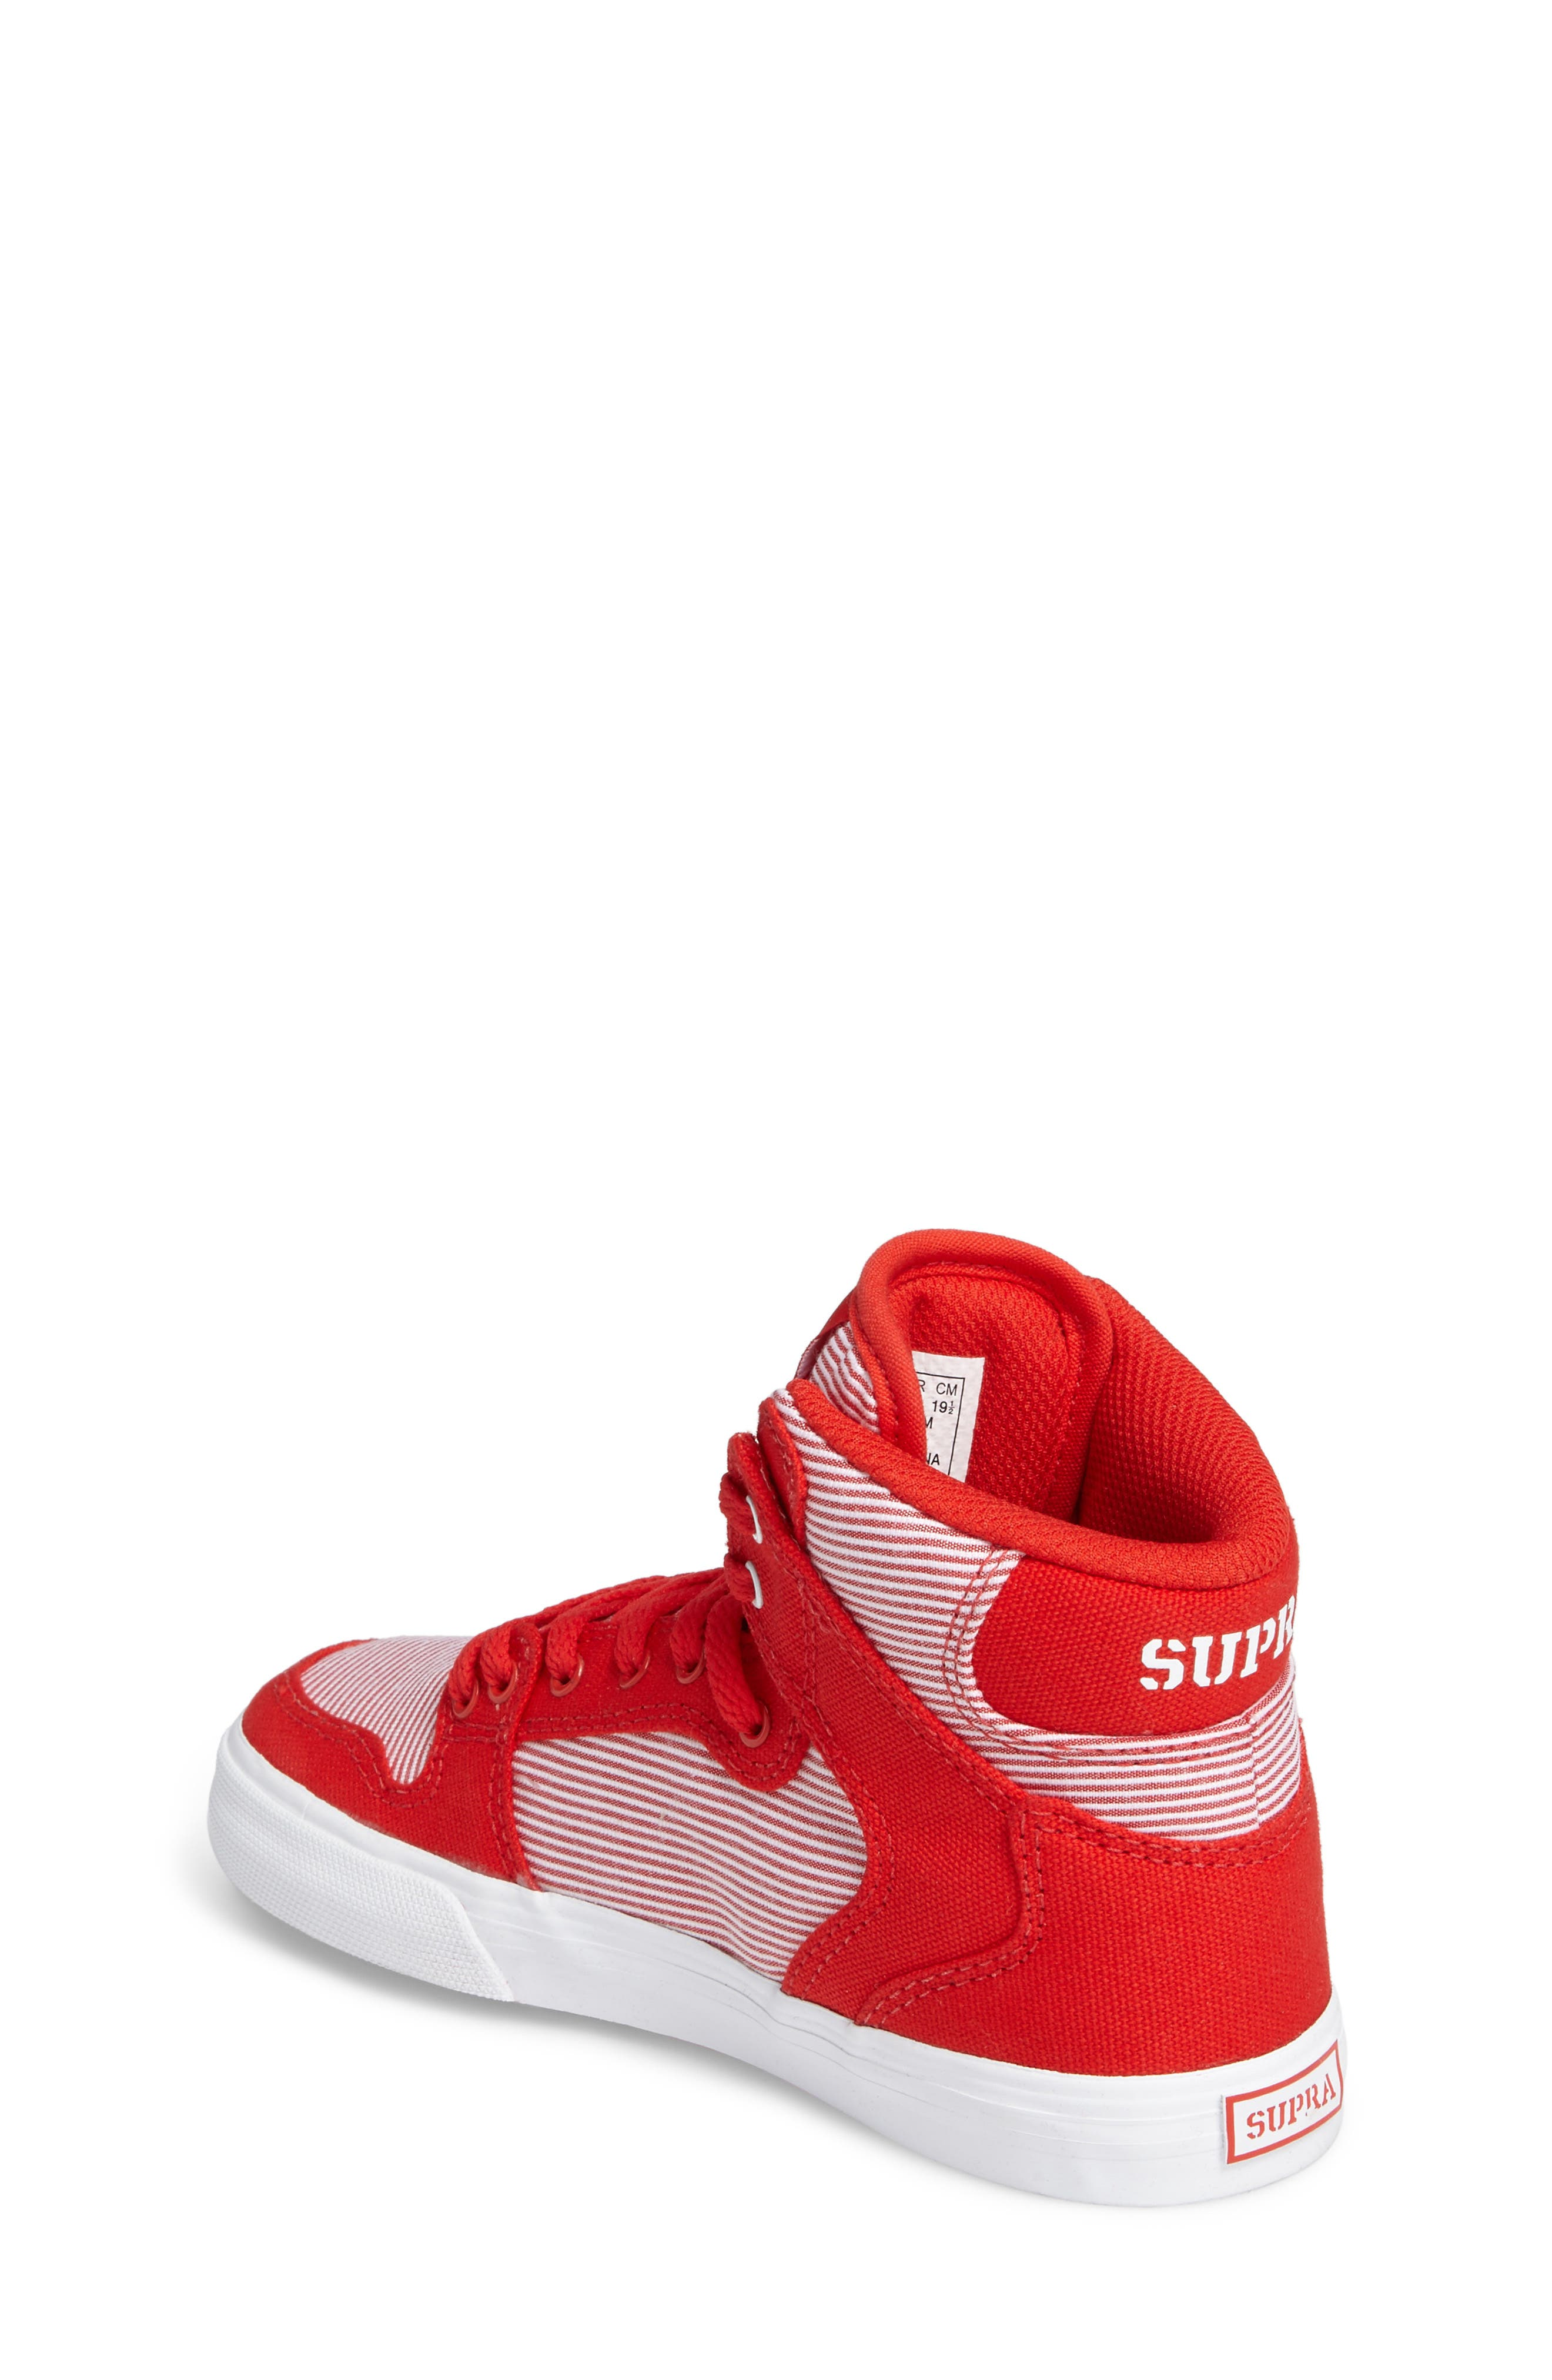 Vaider High Top Sneaker,                             Alternate thumbnail 2, color,                             Red/ White